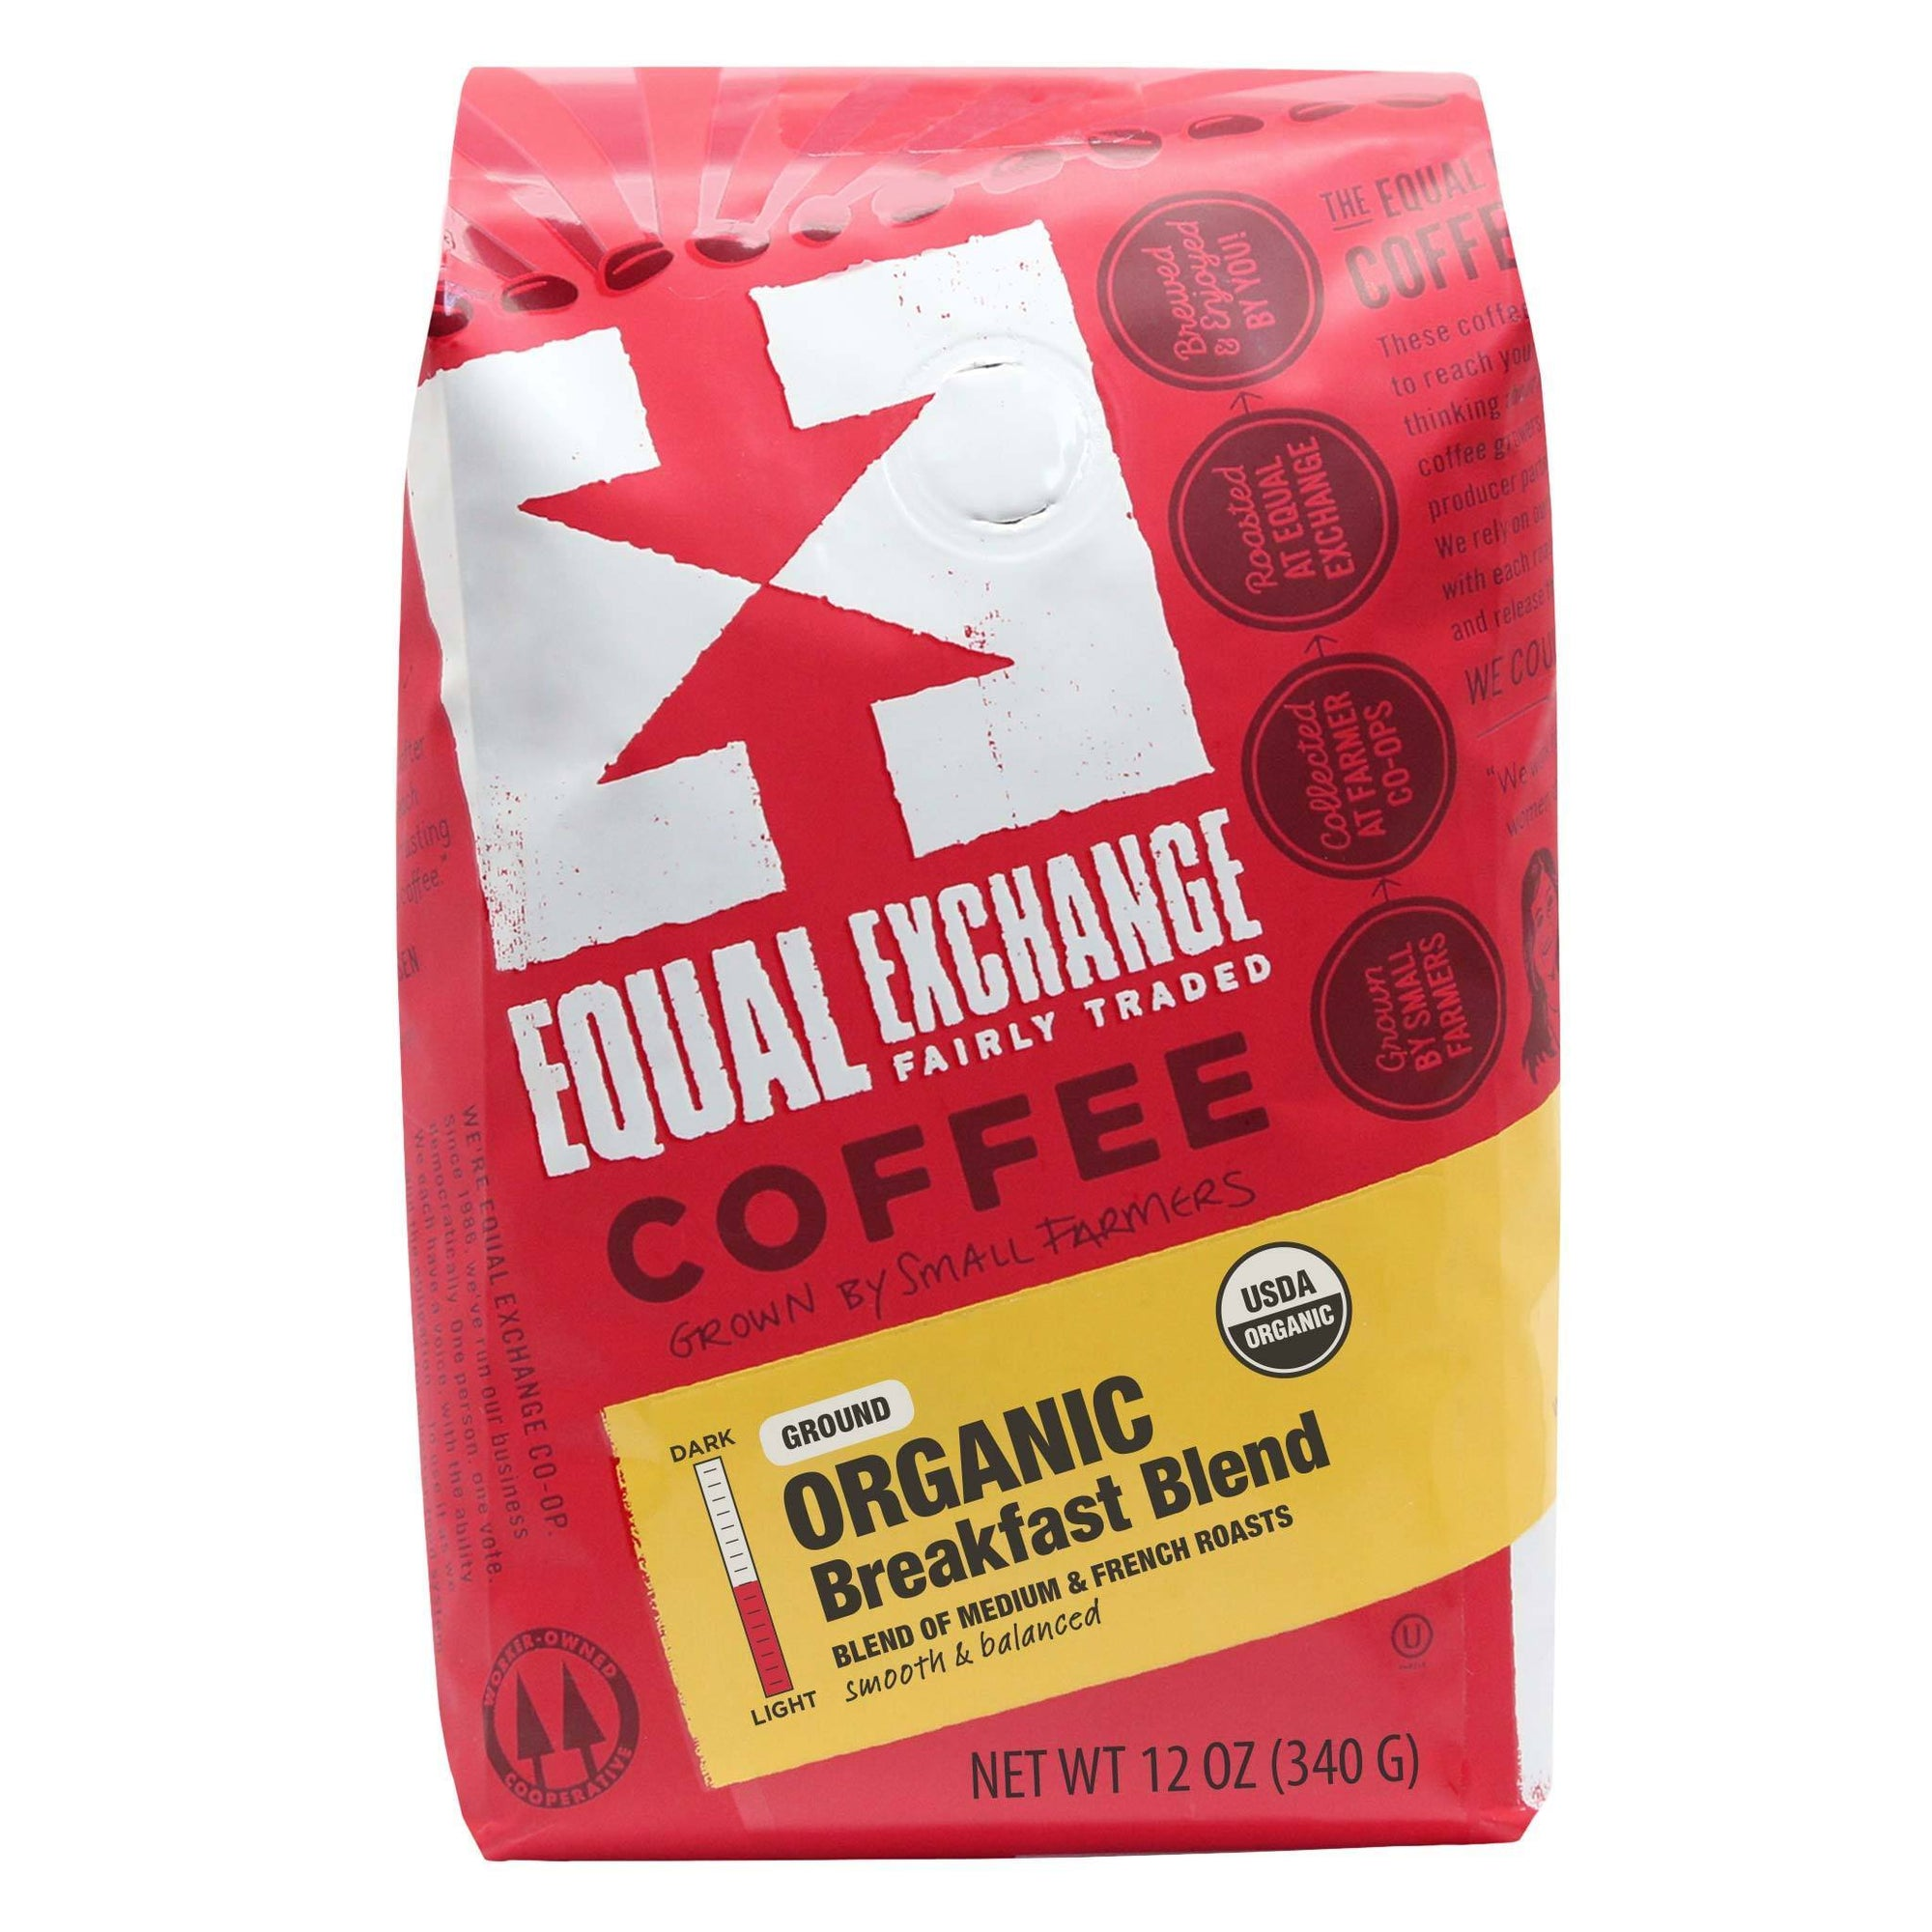 Food & Drink - Equal Exchange - Organic Breakfast Blend - Ground, 340g